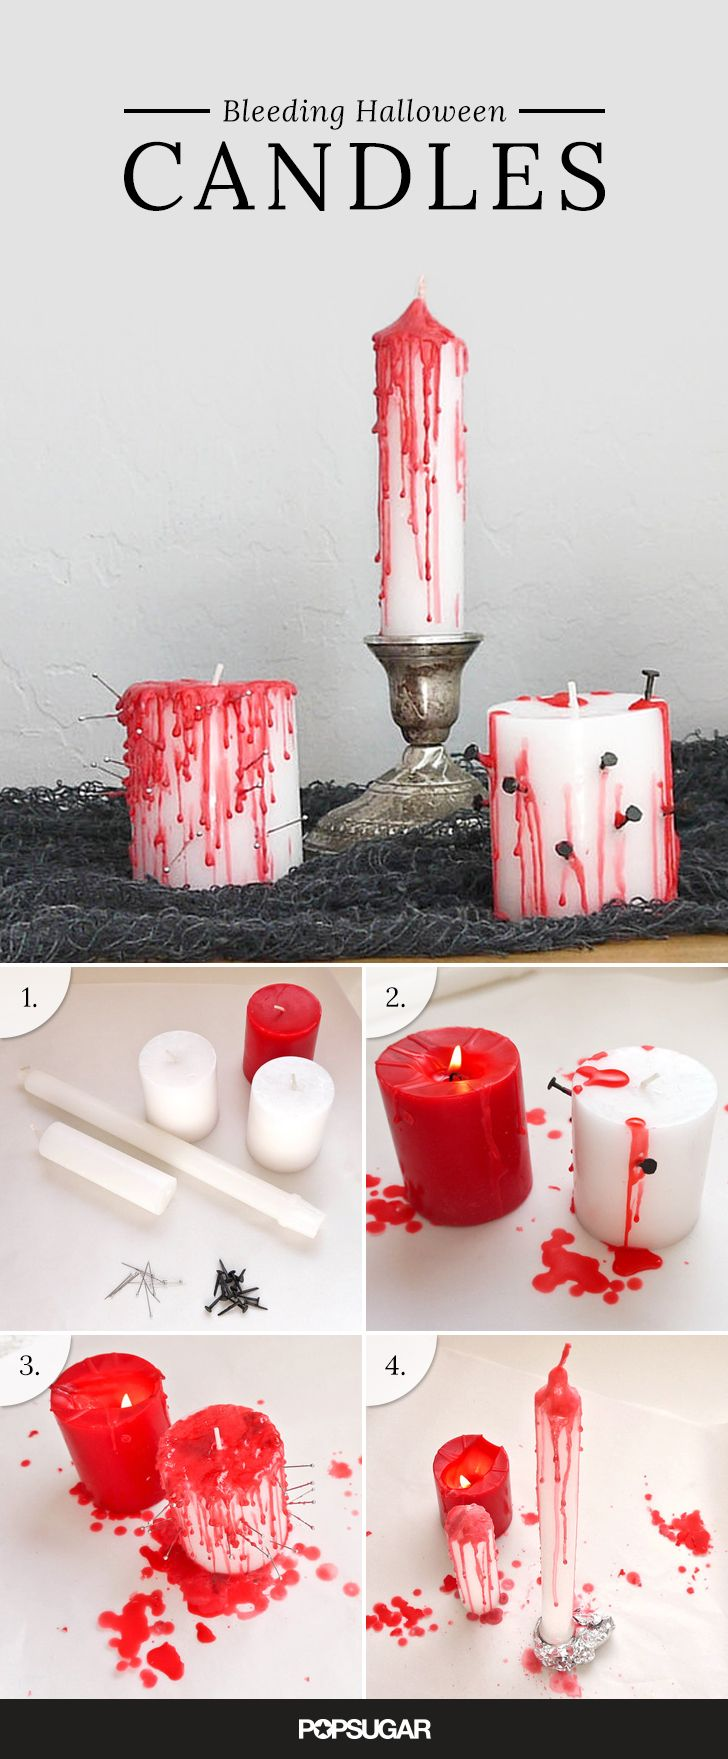 Bloody Candles Without The Gore